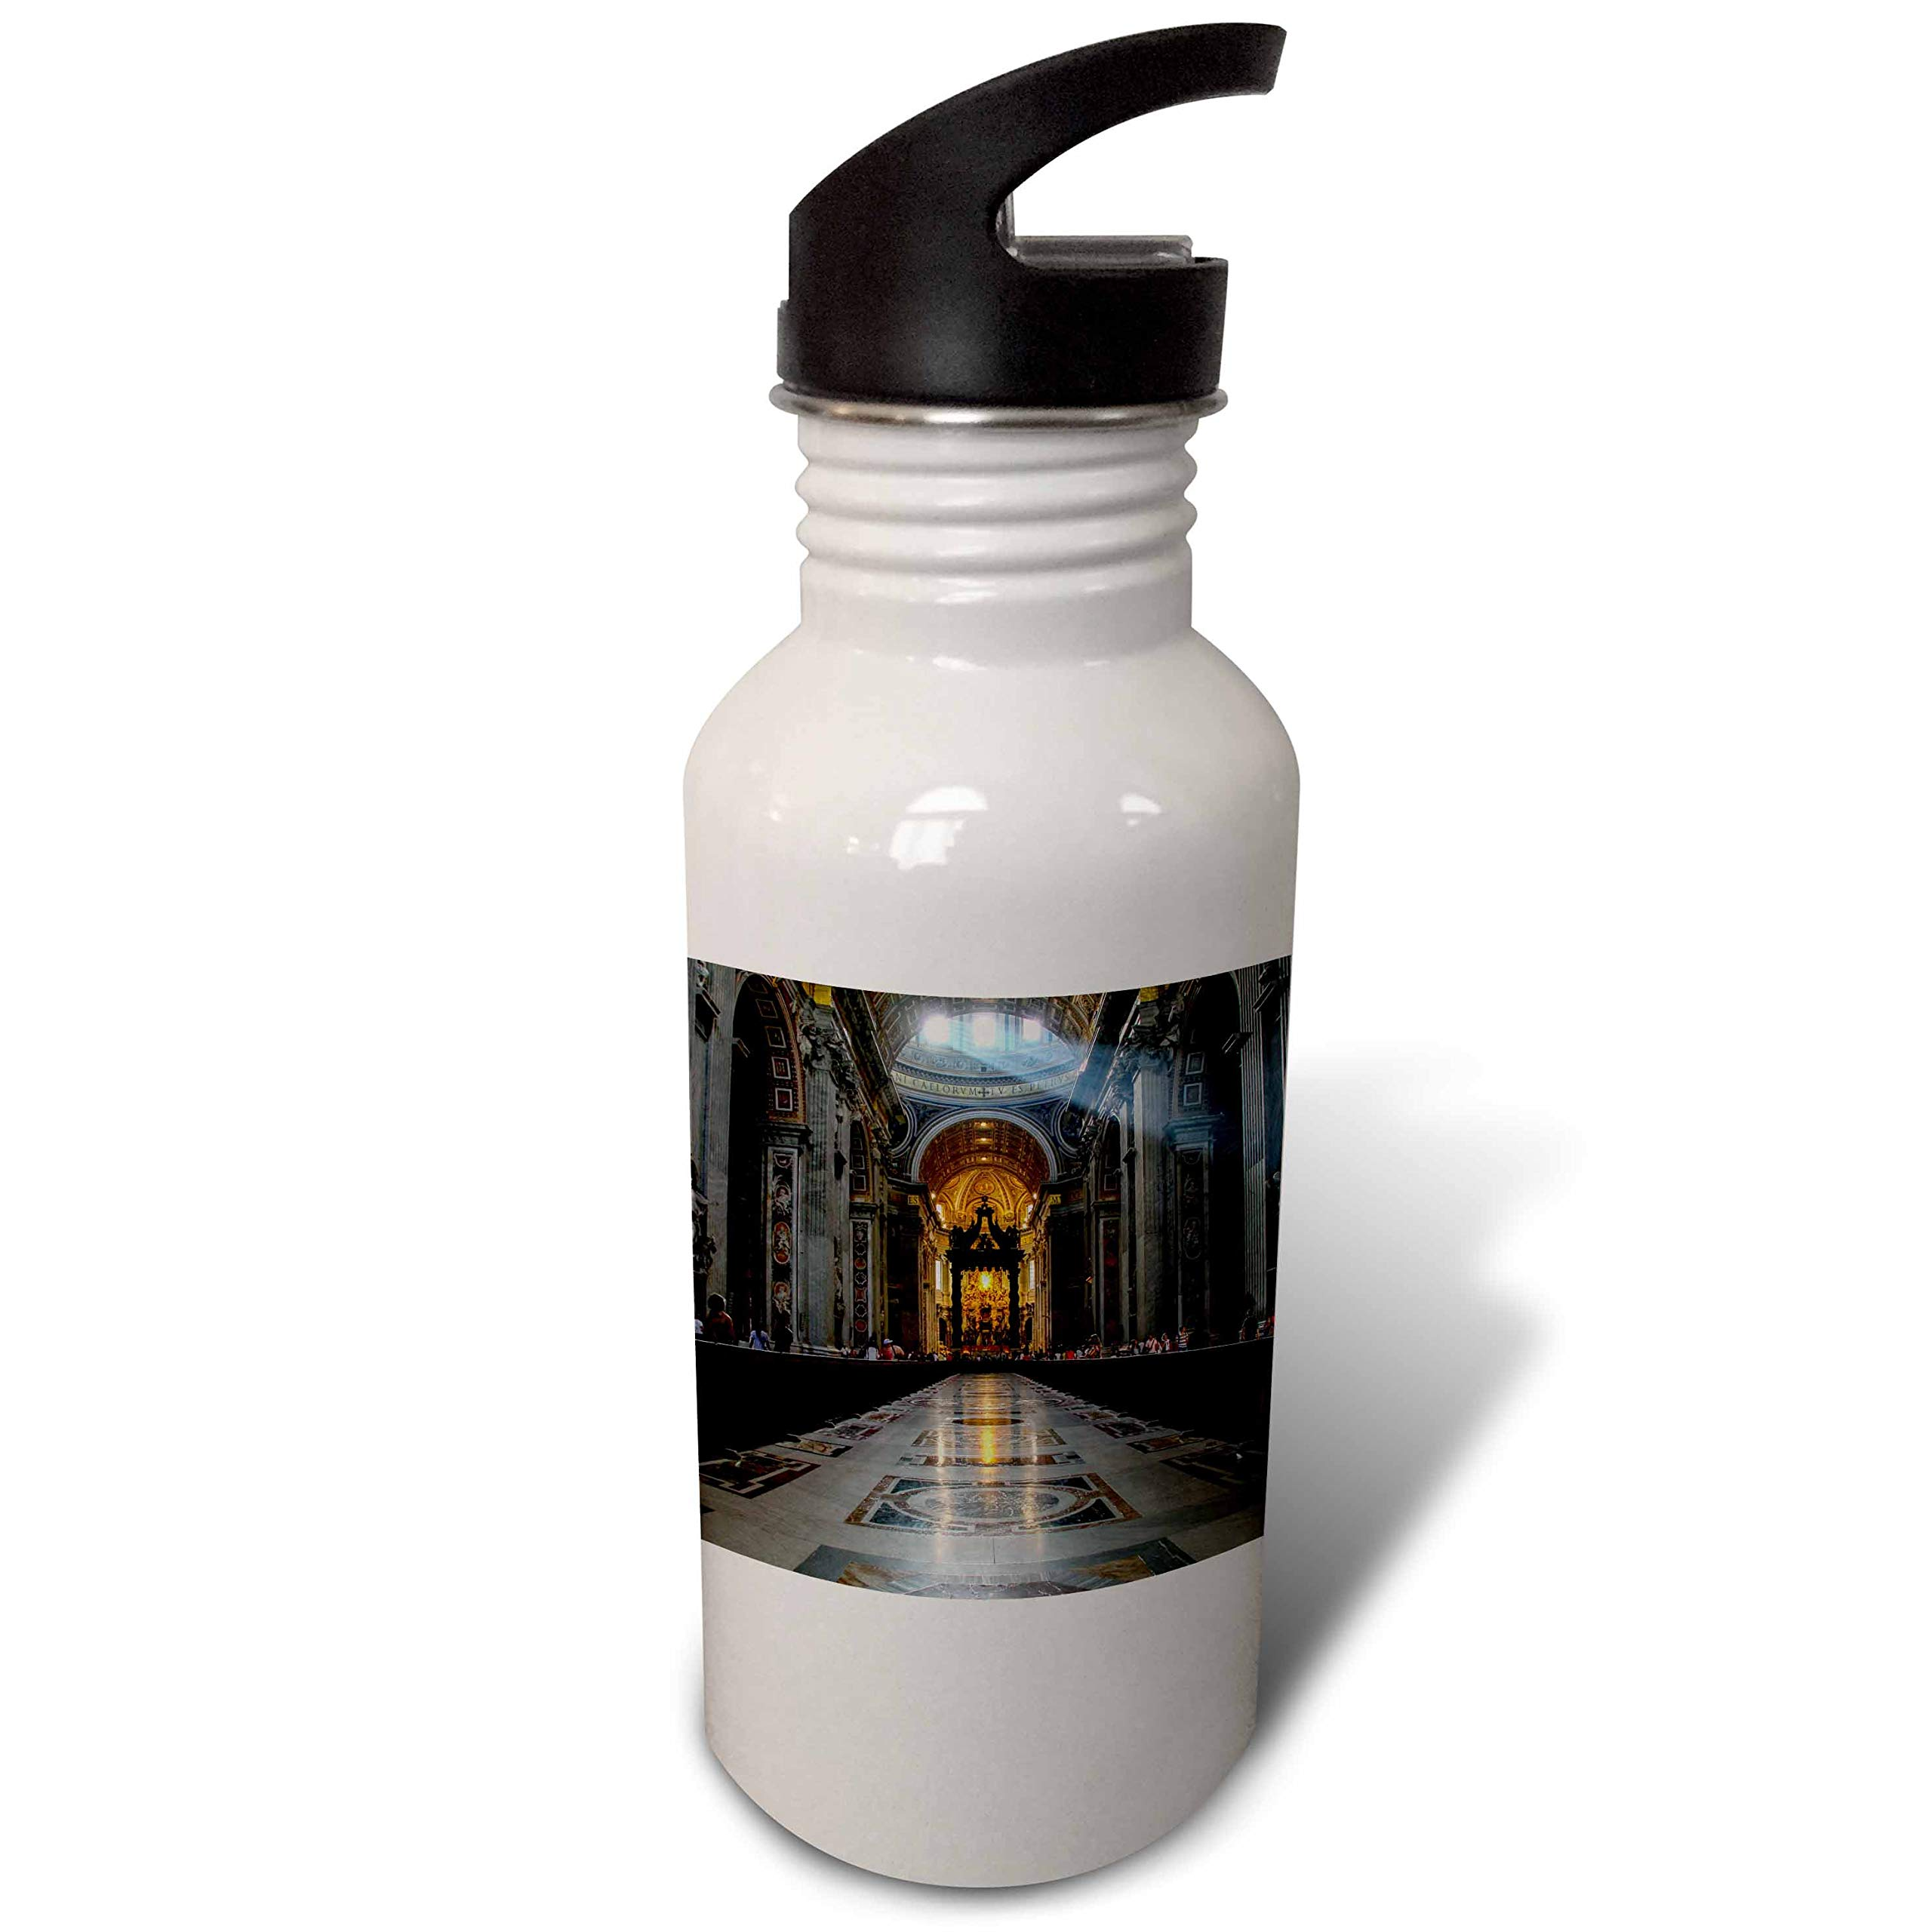 3dRose Elysium Photography - Architecture - St. Peters Basilica interior, Rome, Italy - Flip Straw 21oz Water Bottle (wb_289615_2)